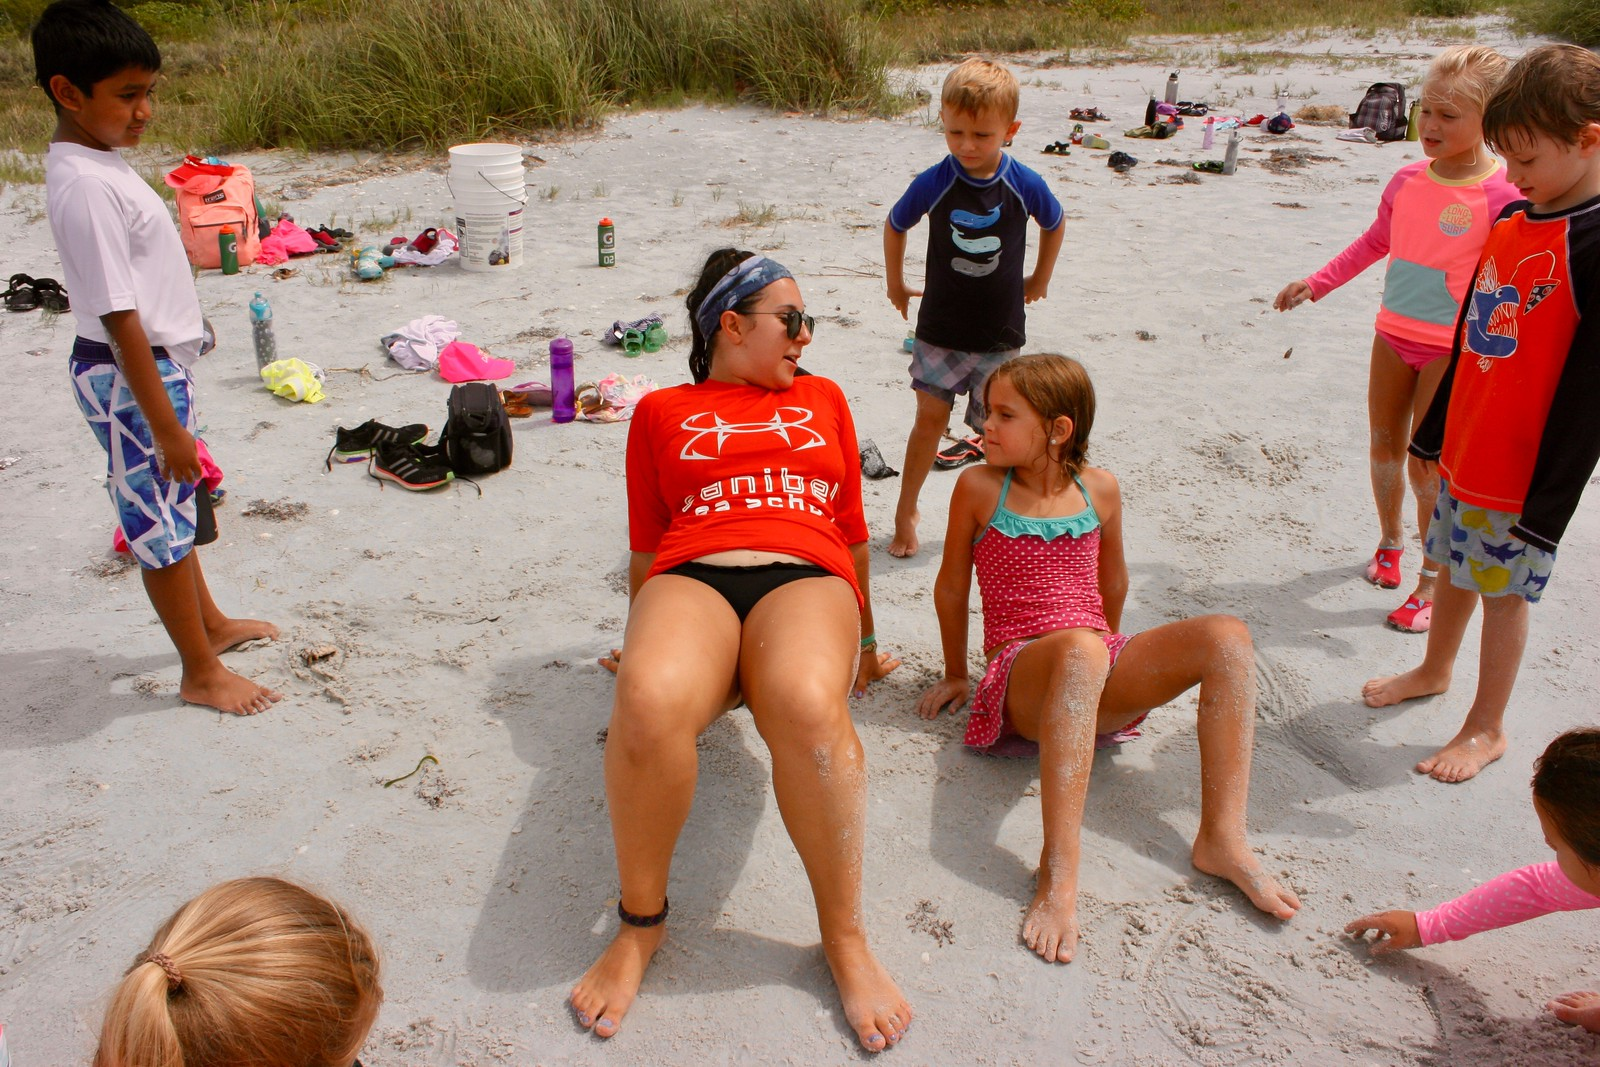 Cuttlefish Week campers played a game of charades on the beach.